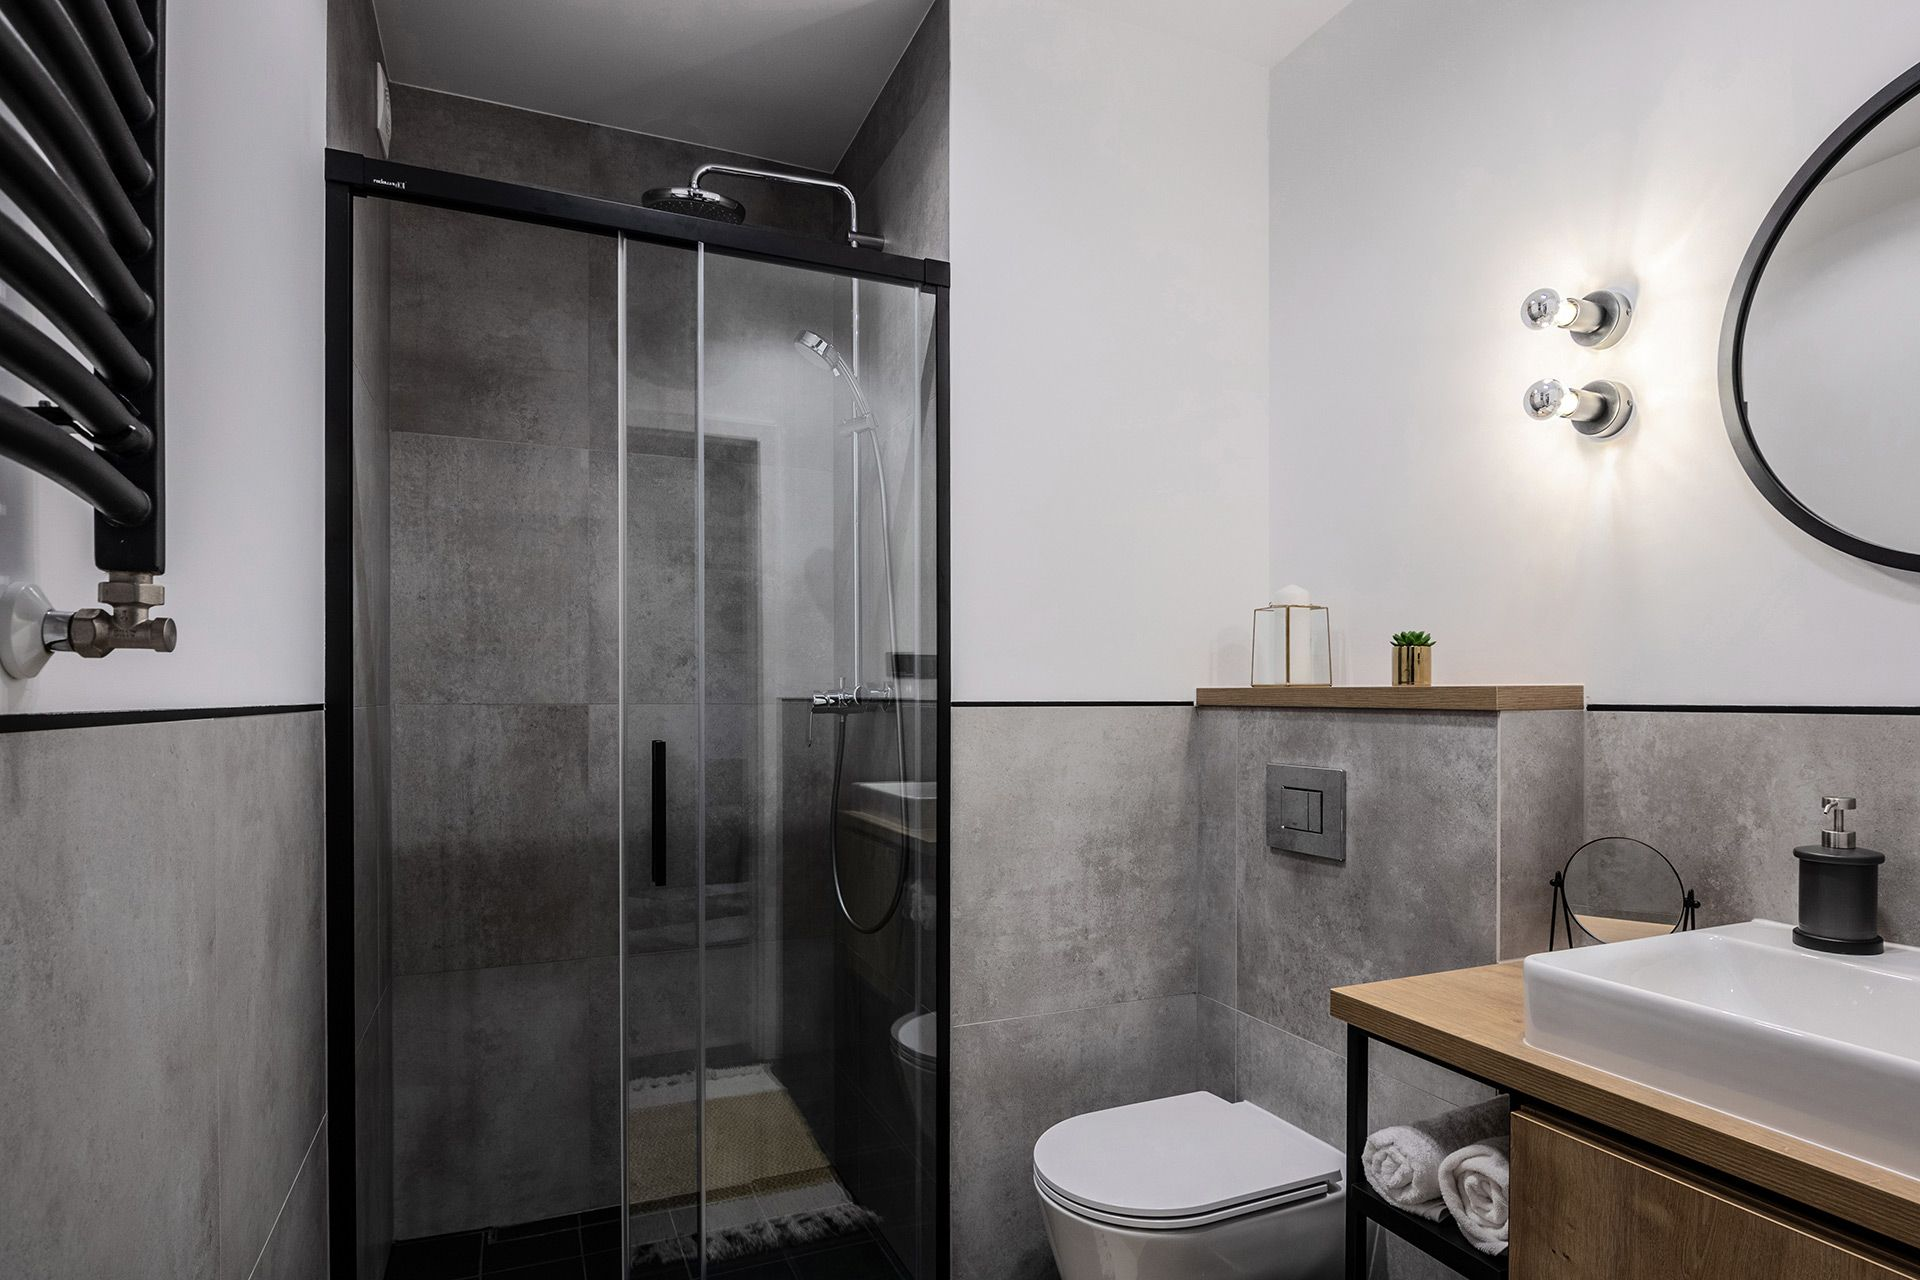 Studio - Medium apartment to rent in Warsaw UPR-A-012-2